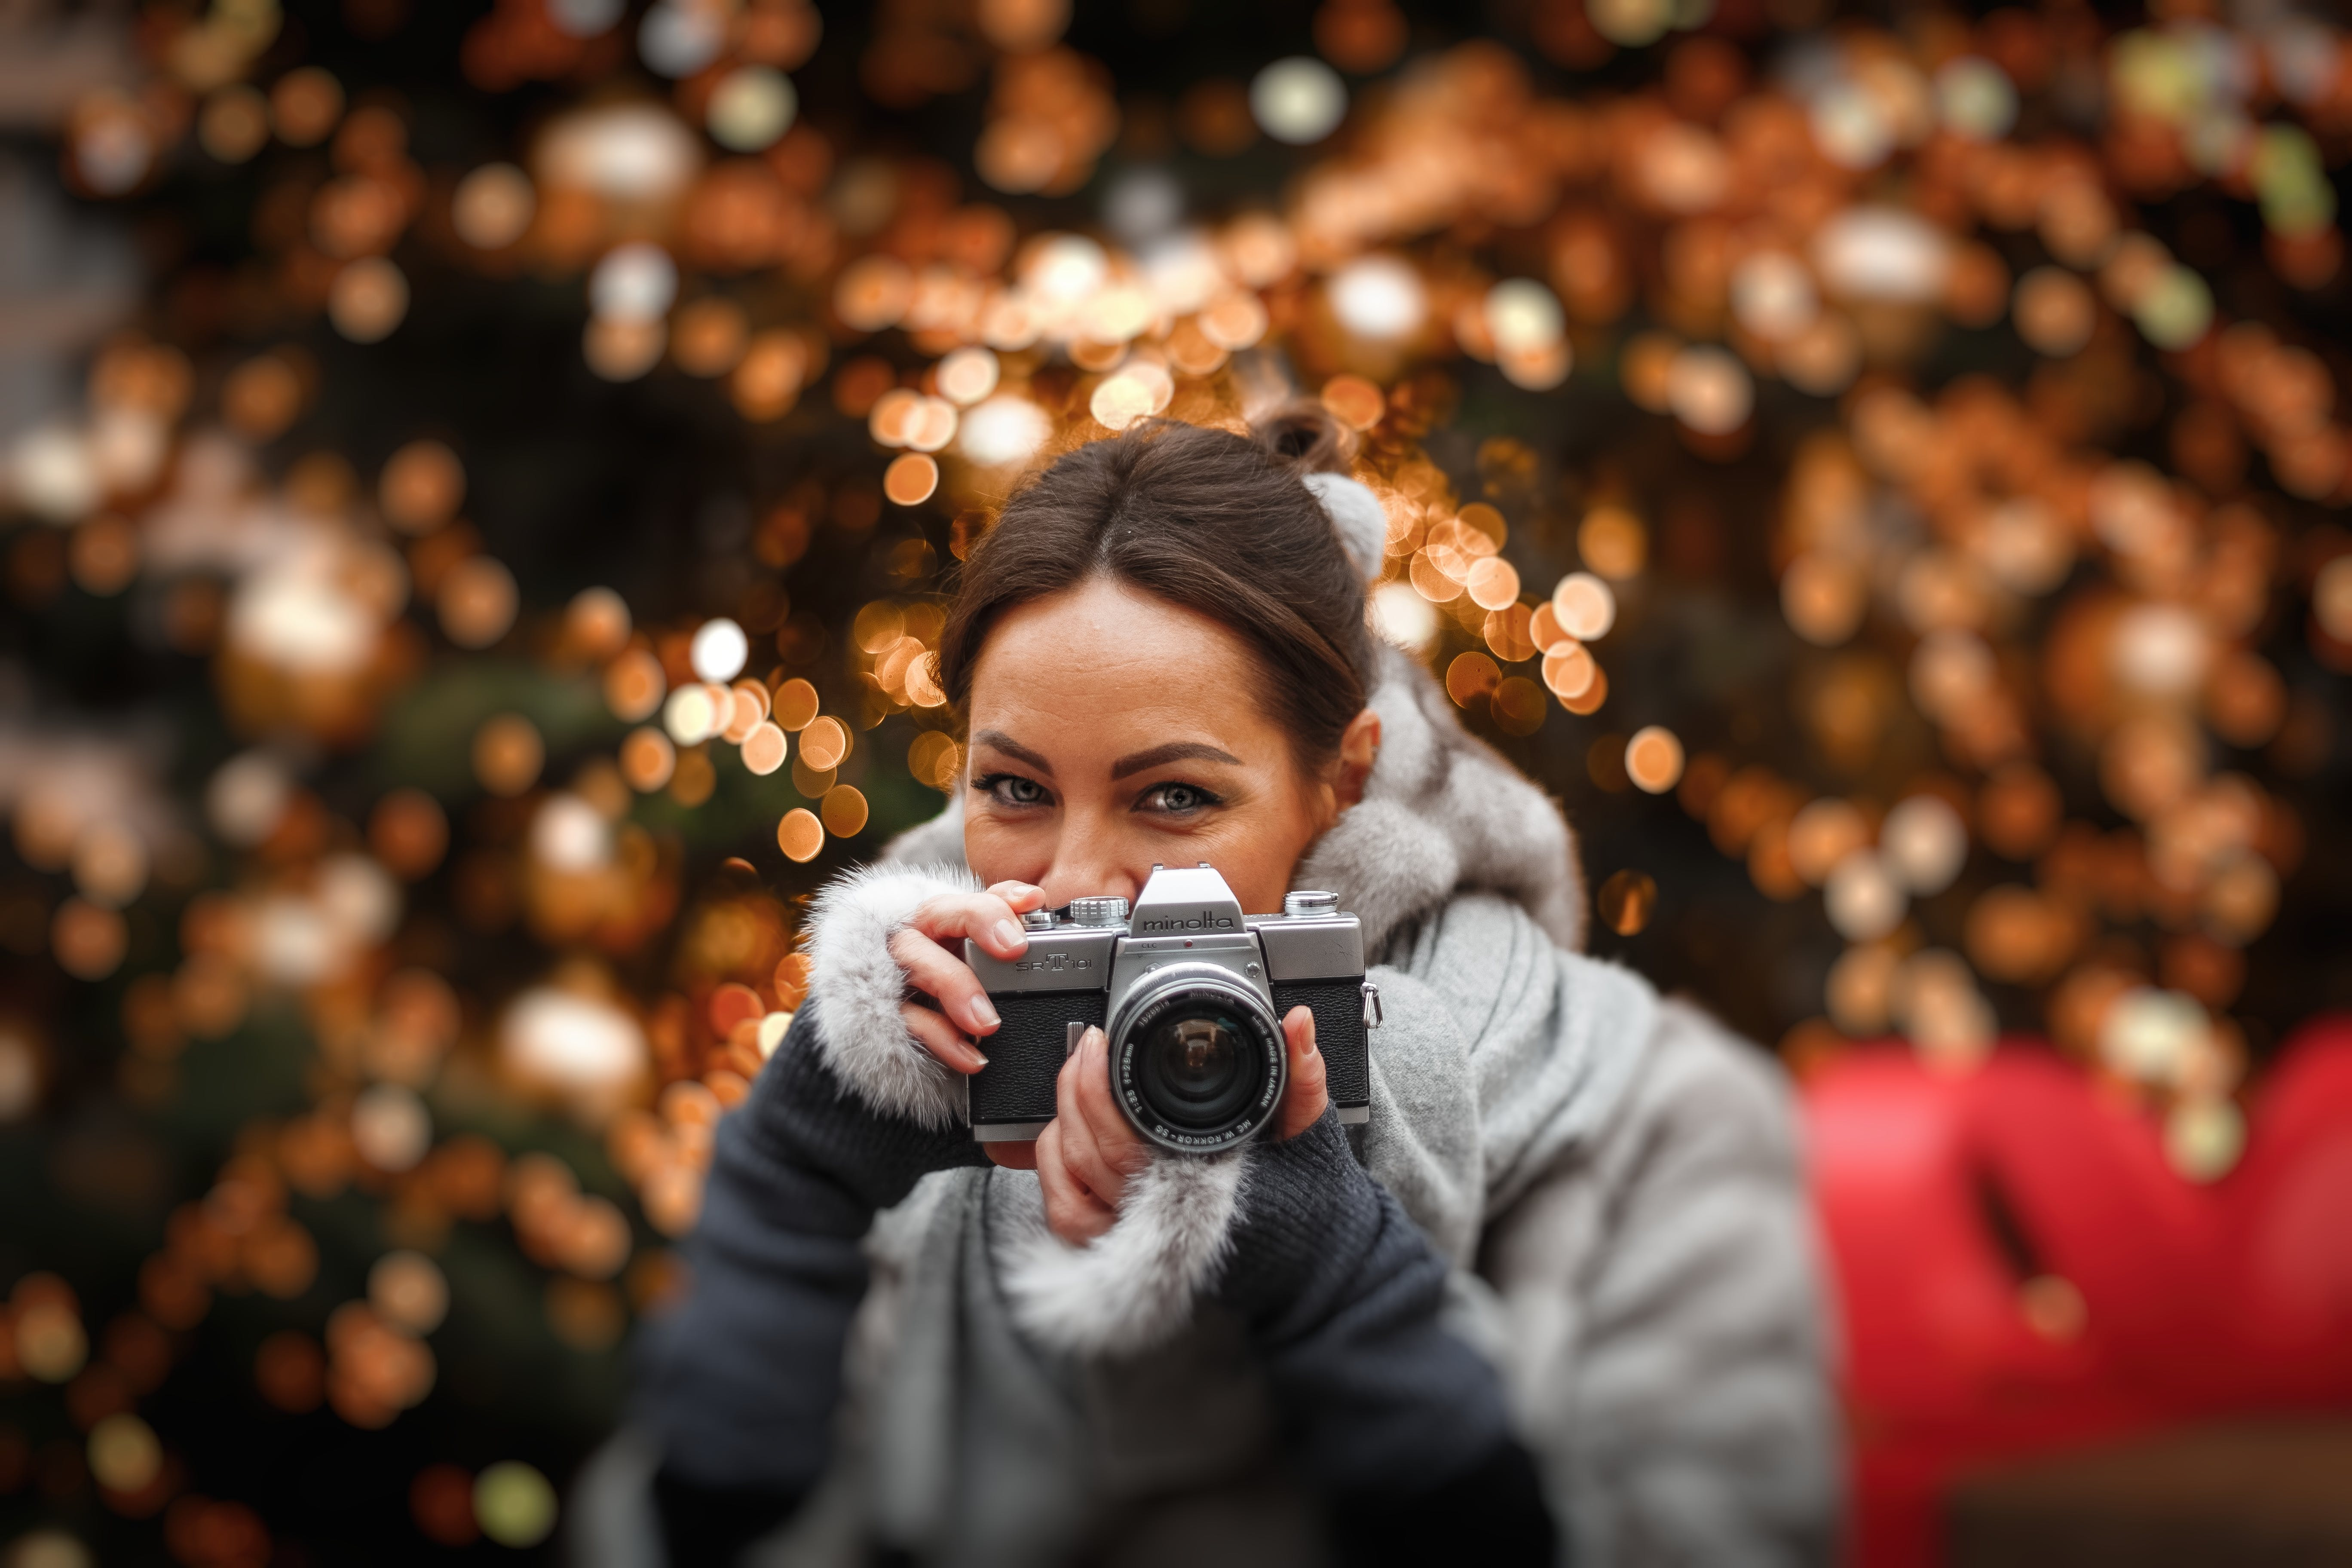 Woman Holding Camera In Selective Focus Photography